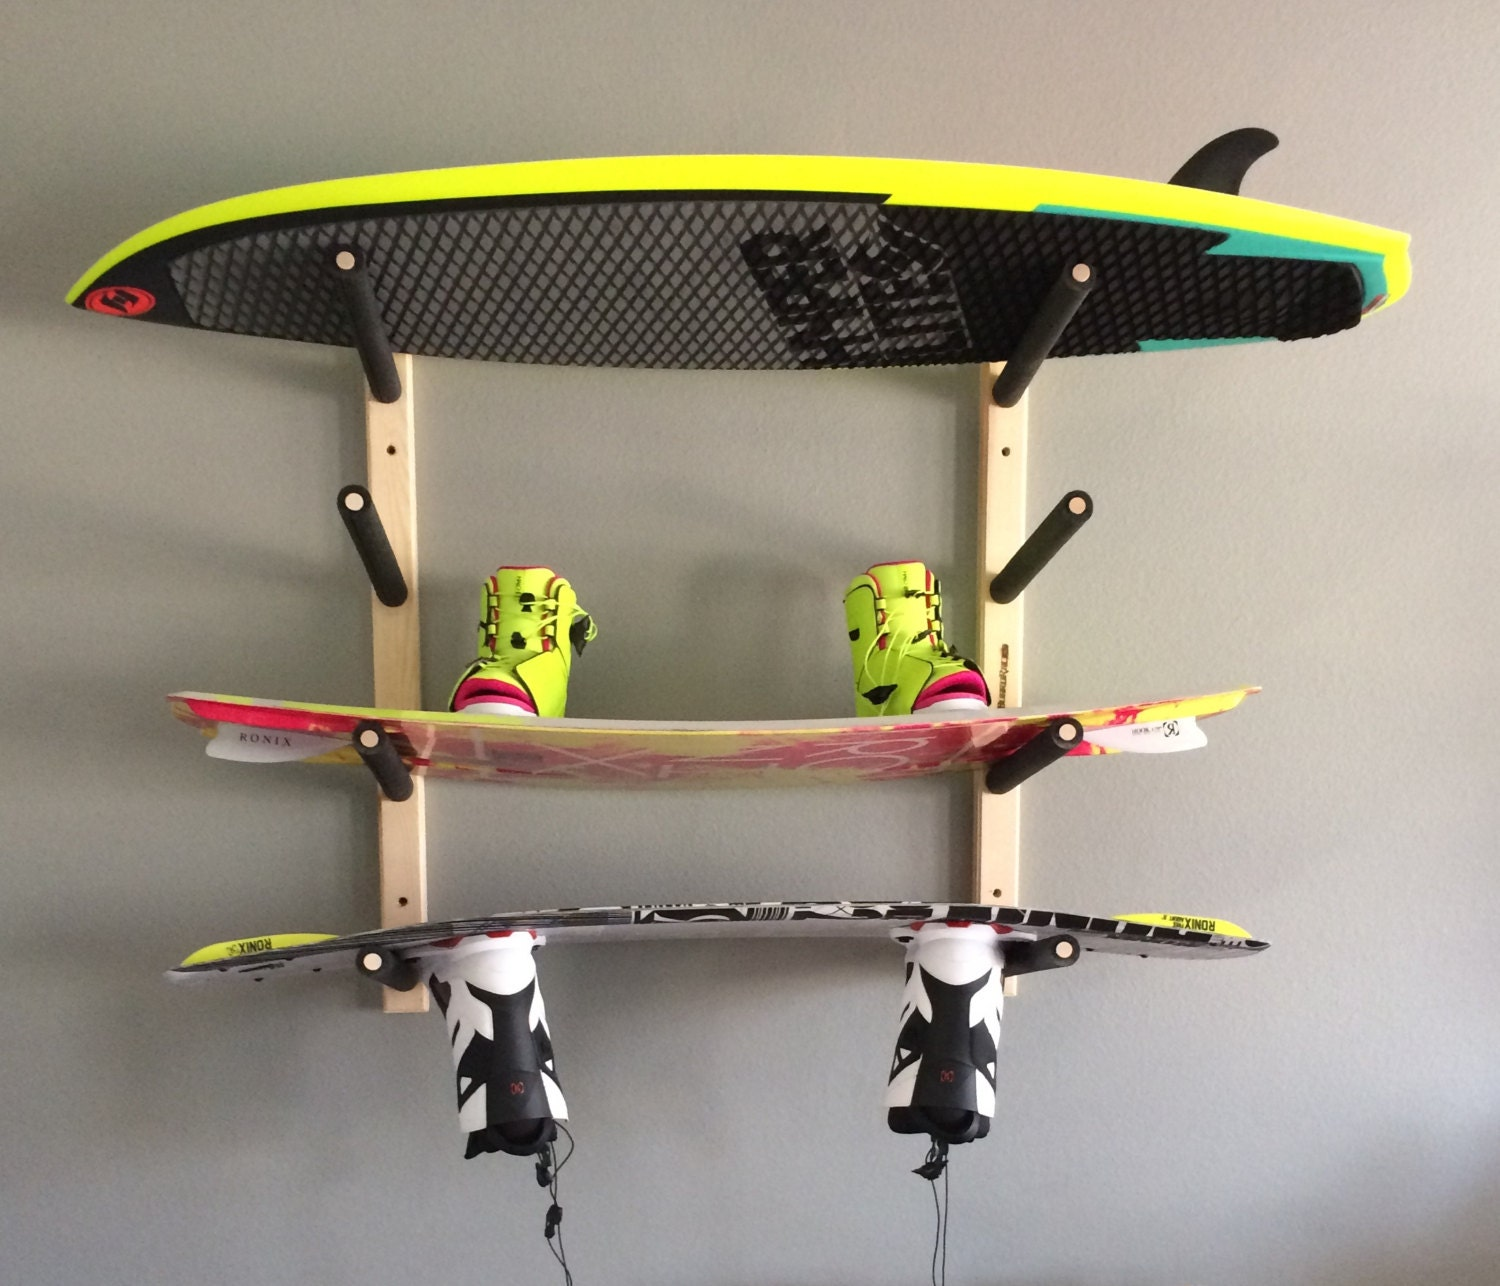 Wakeboard Wall Rack Mount Holds 4 Boards